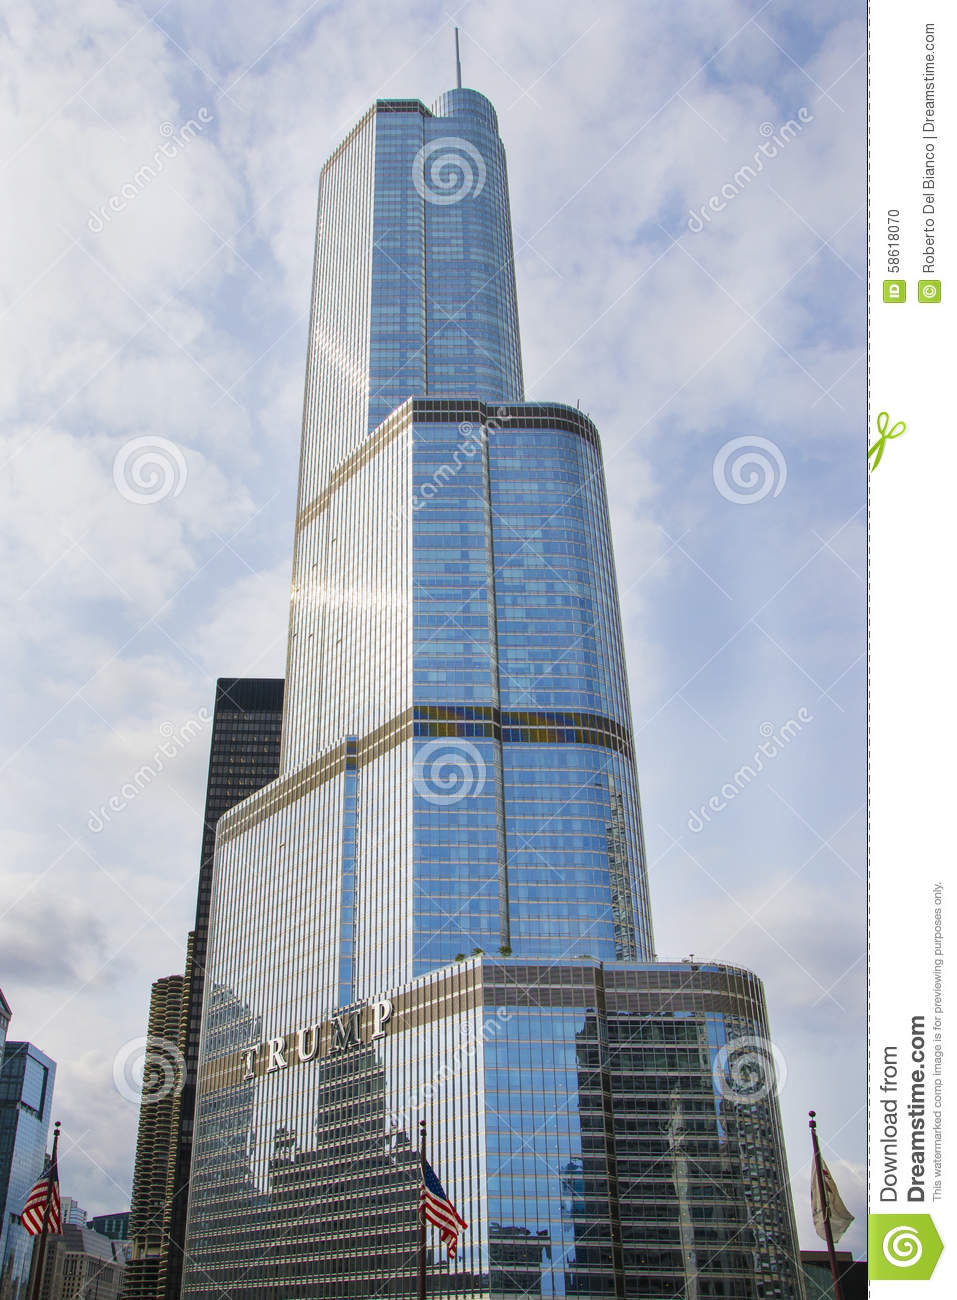 Trump Tower By Day, Chicago, USA Editorial Image.